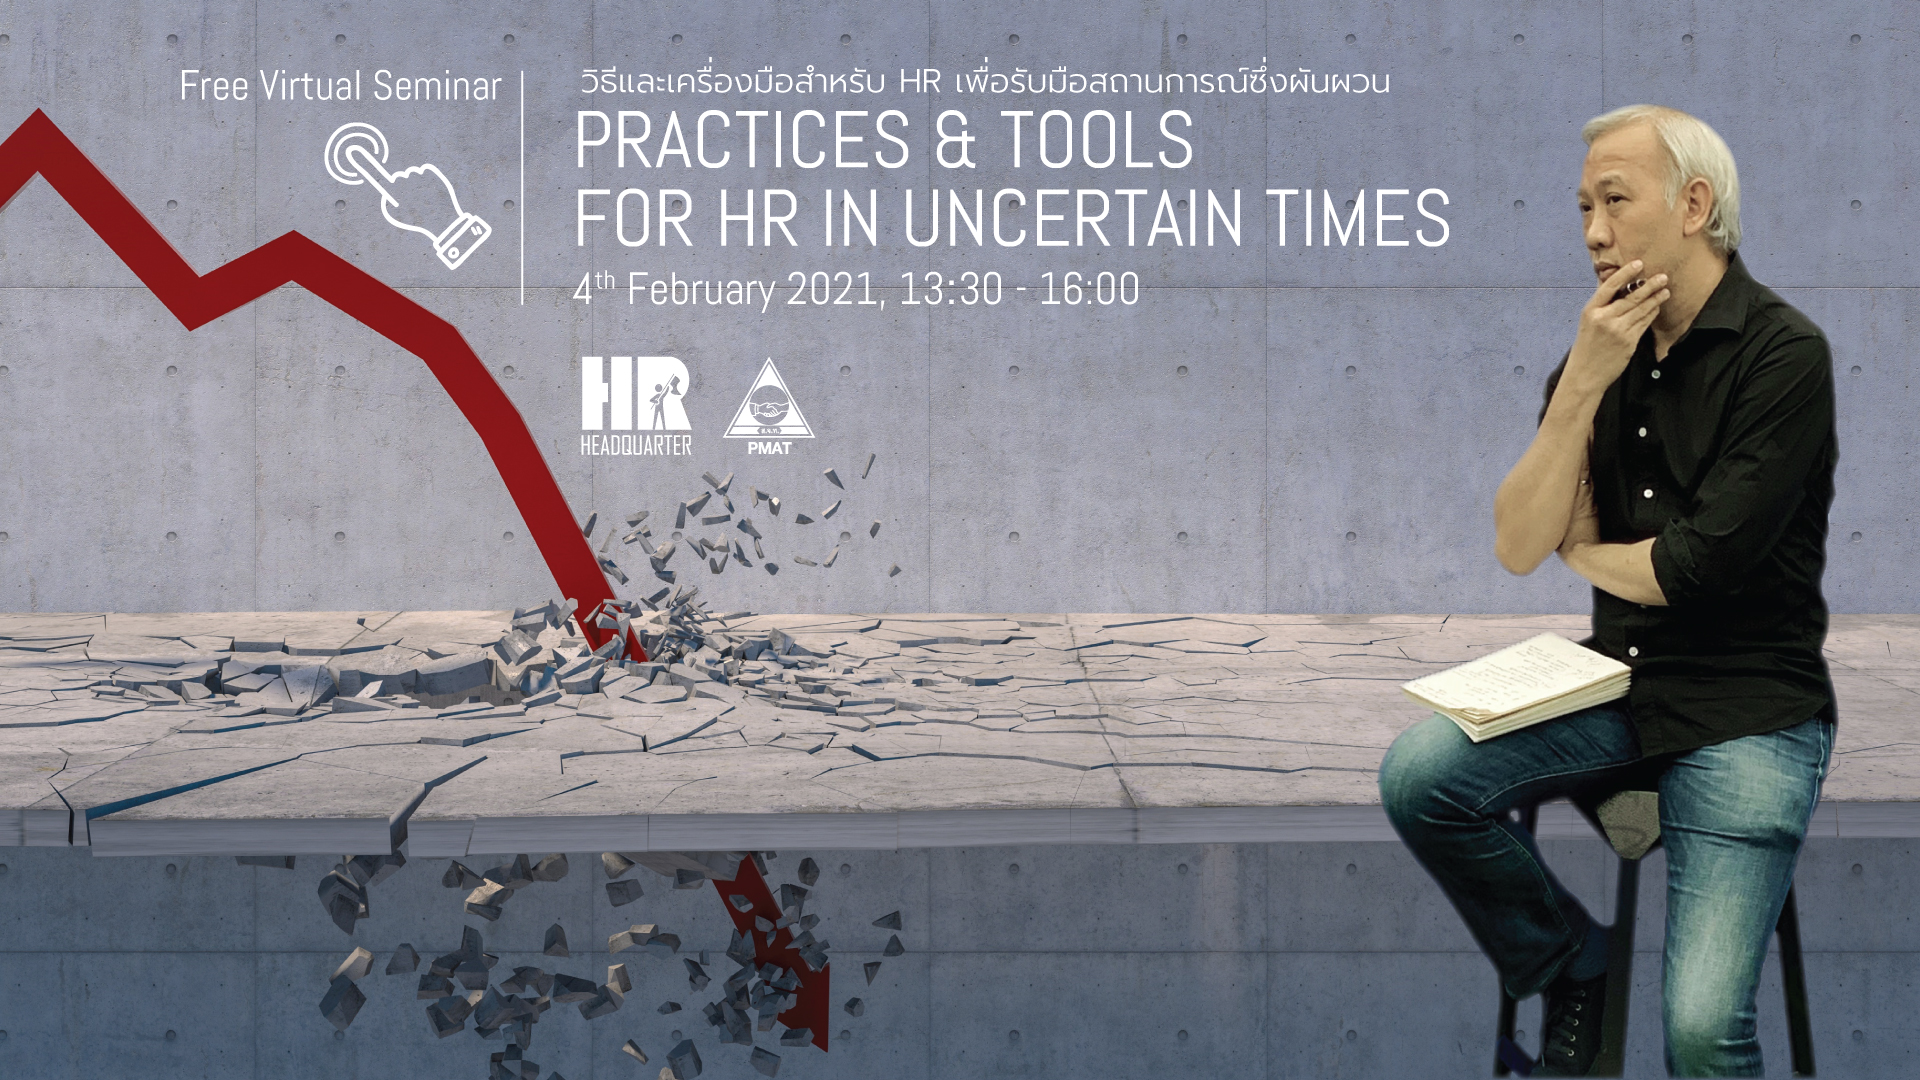 Free Virtual Seminar: PRACTICES & TOOLS FOR HR IN UNCERTAIN TIMES